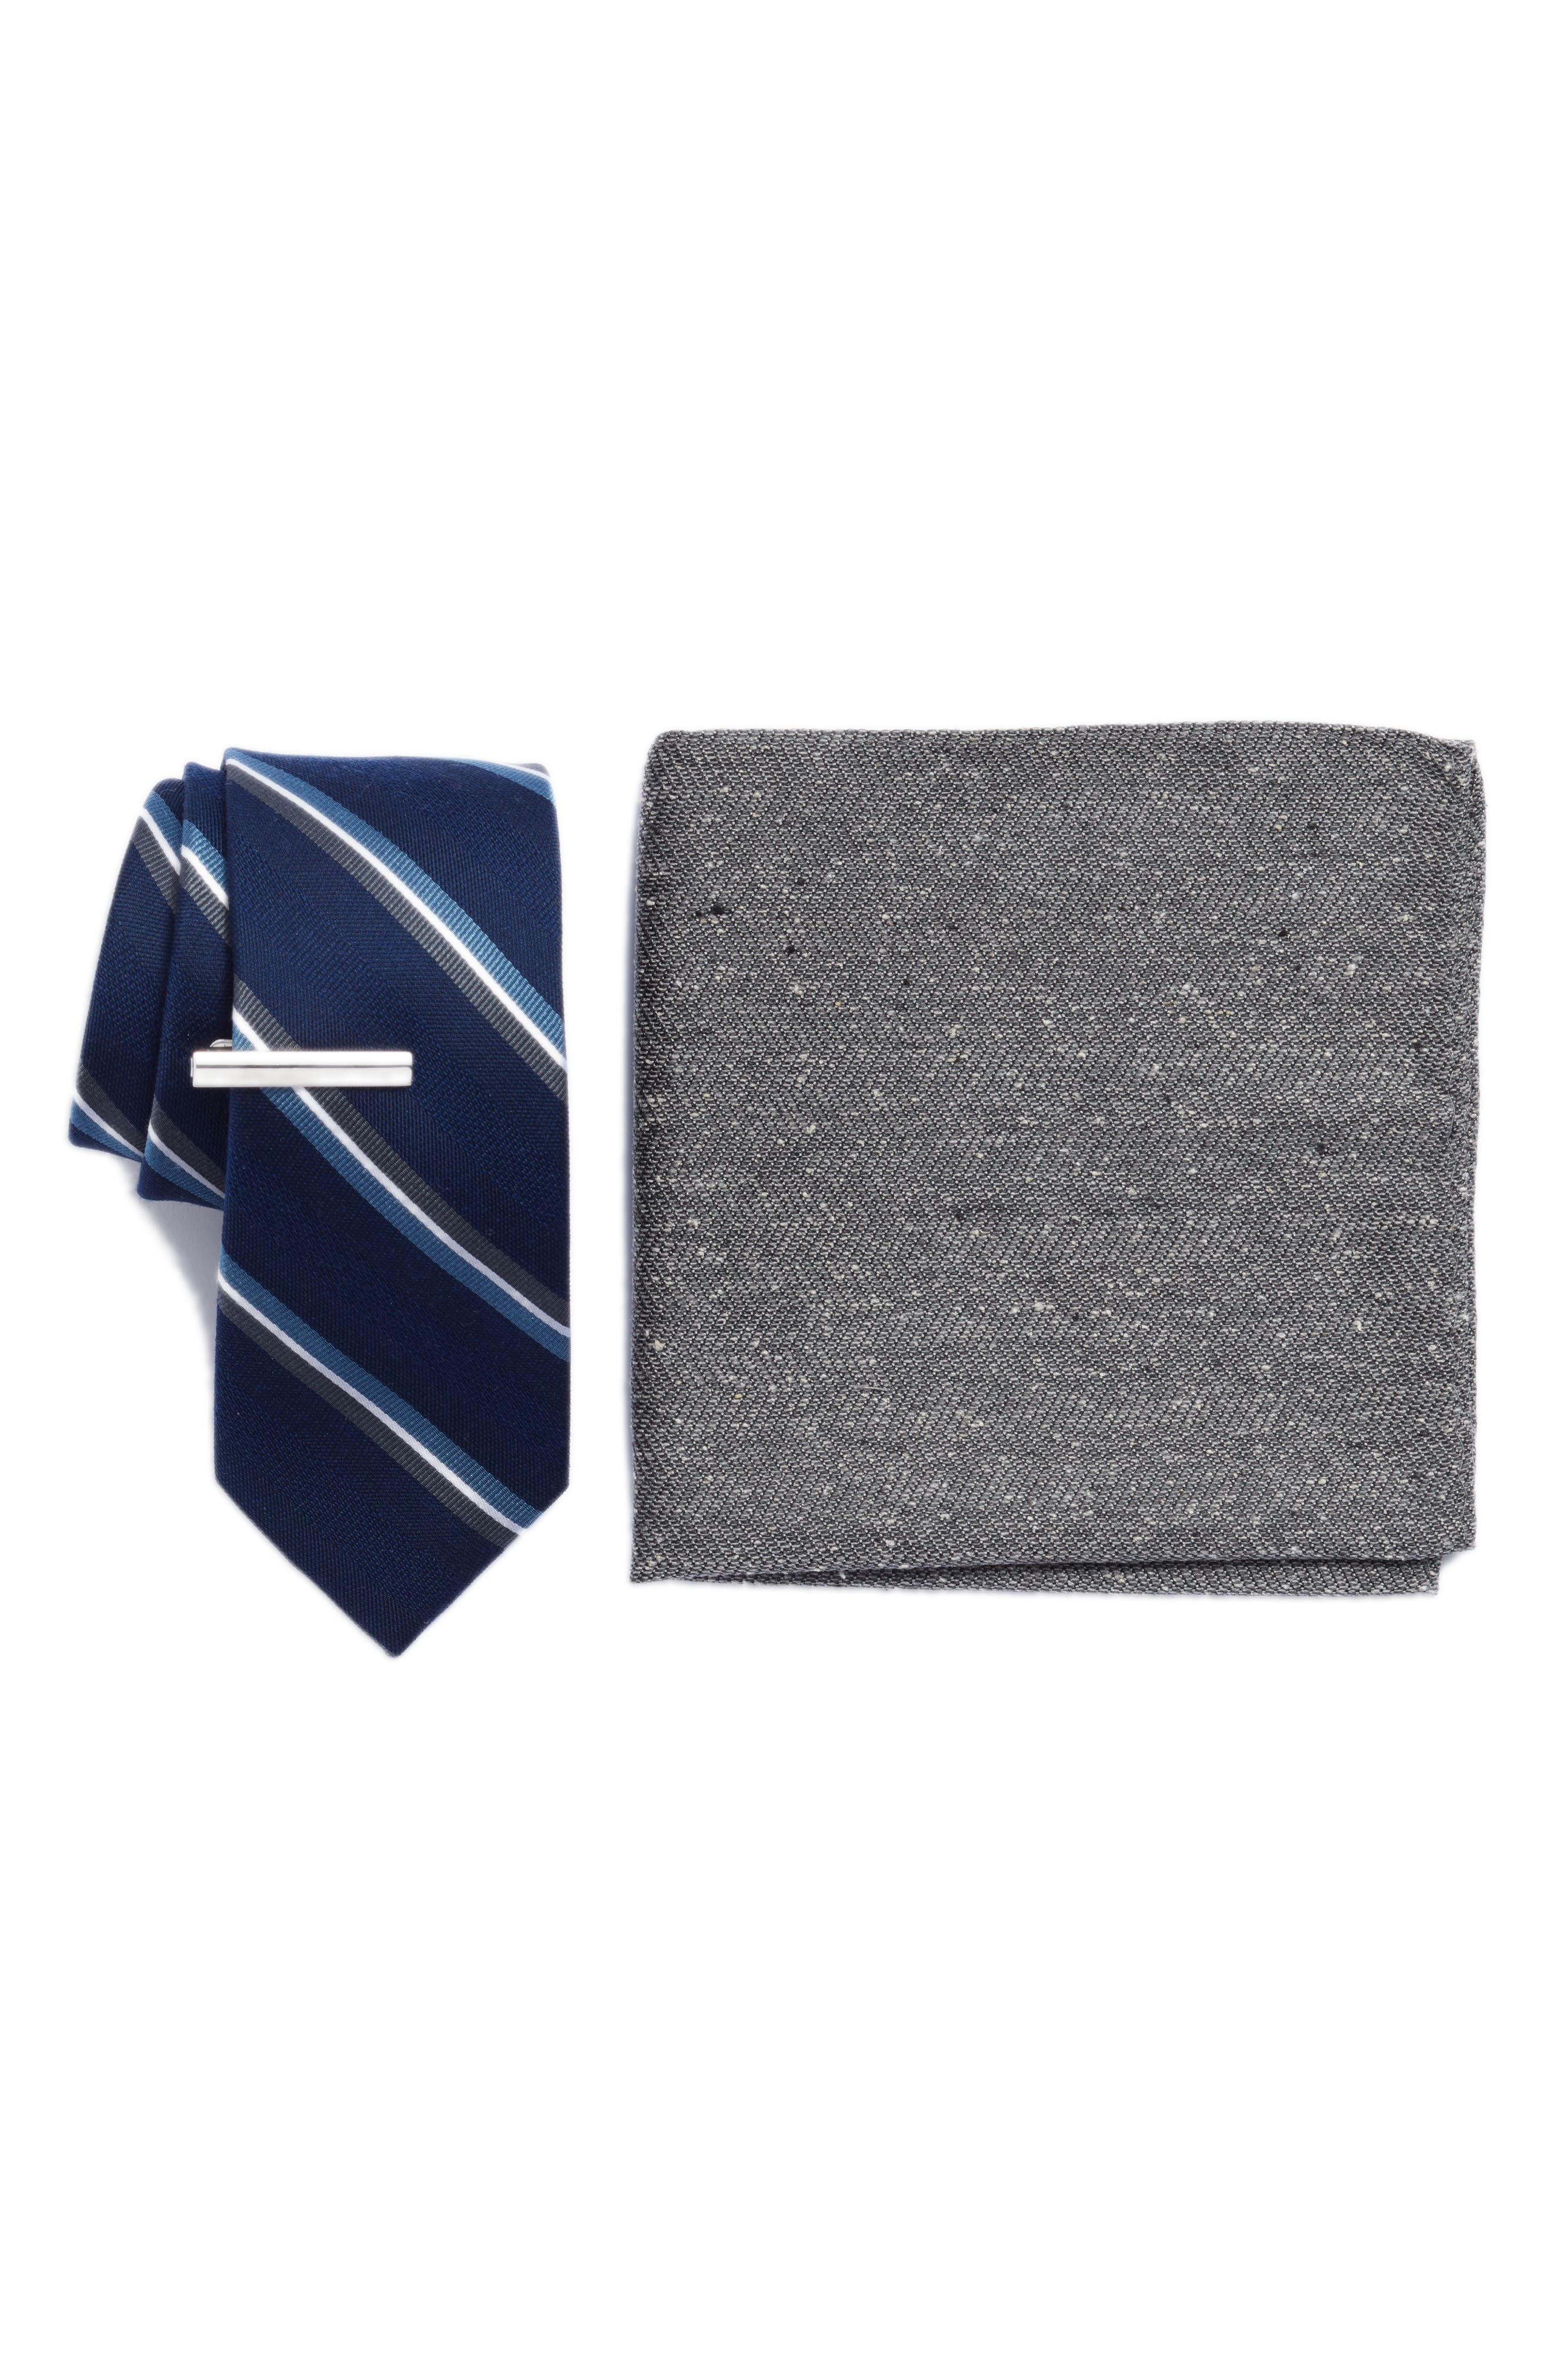 Short Cut Stripe 3-Piece Skinny Tie Style Box,                             Main thumbnail 1, color,                             Navy